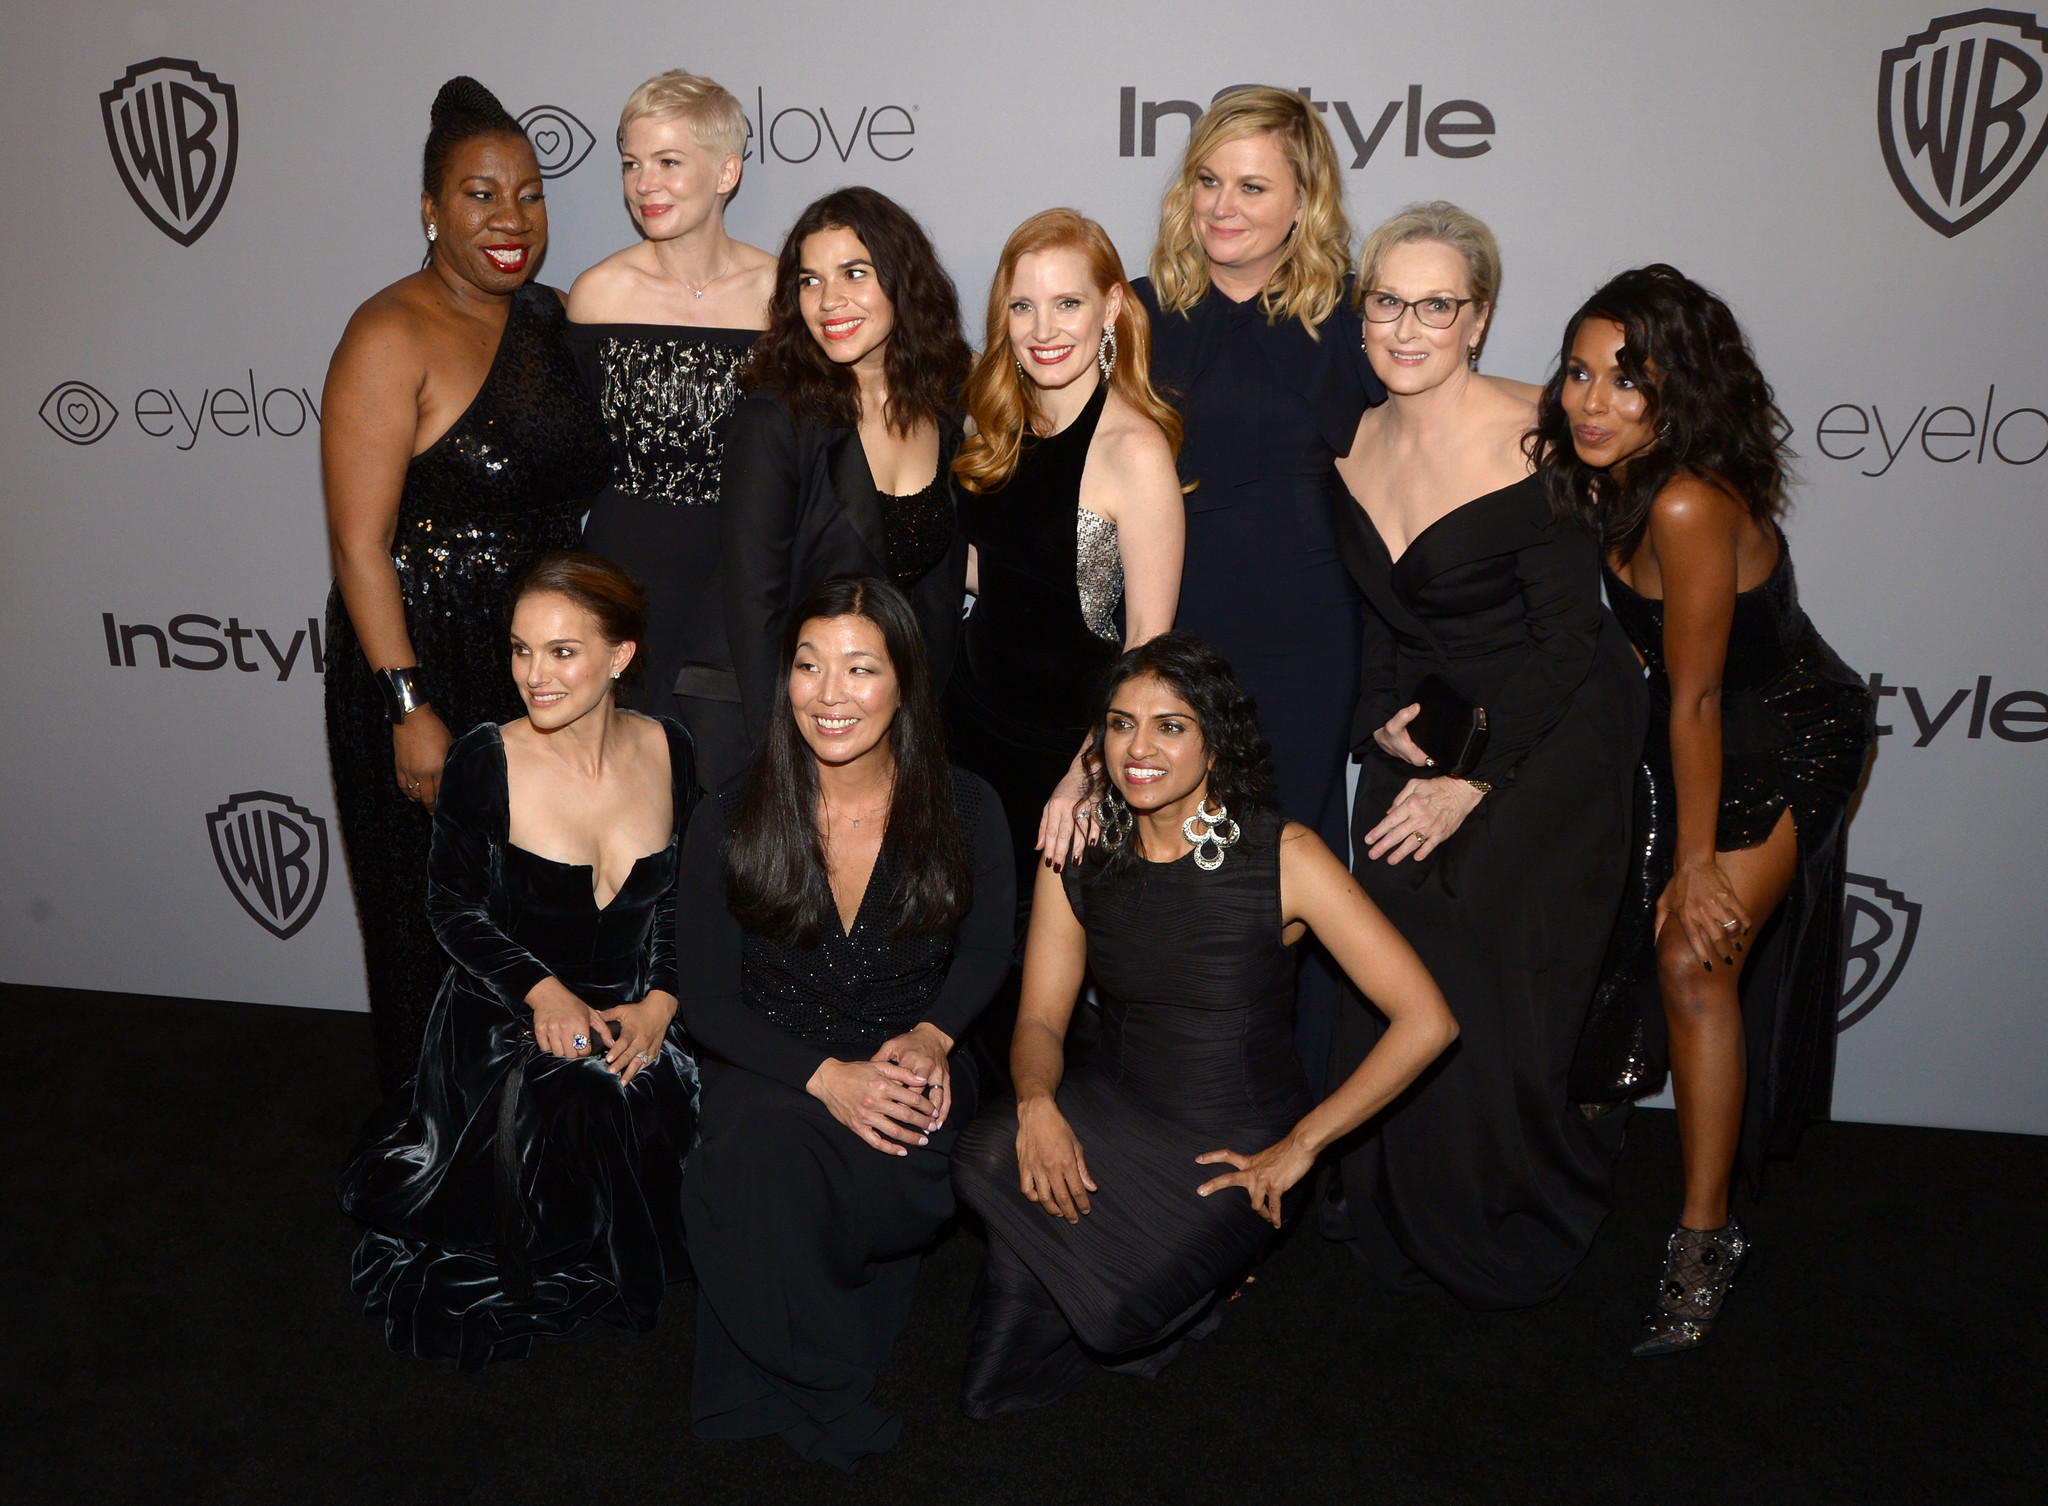 Rosa Clemente, Michelle Williams, America Ferrera, Jessica Chastain, Amy Poehler, Meryl Streep and Kerry Washington